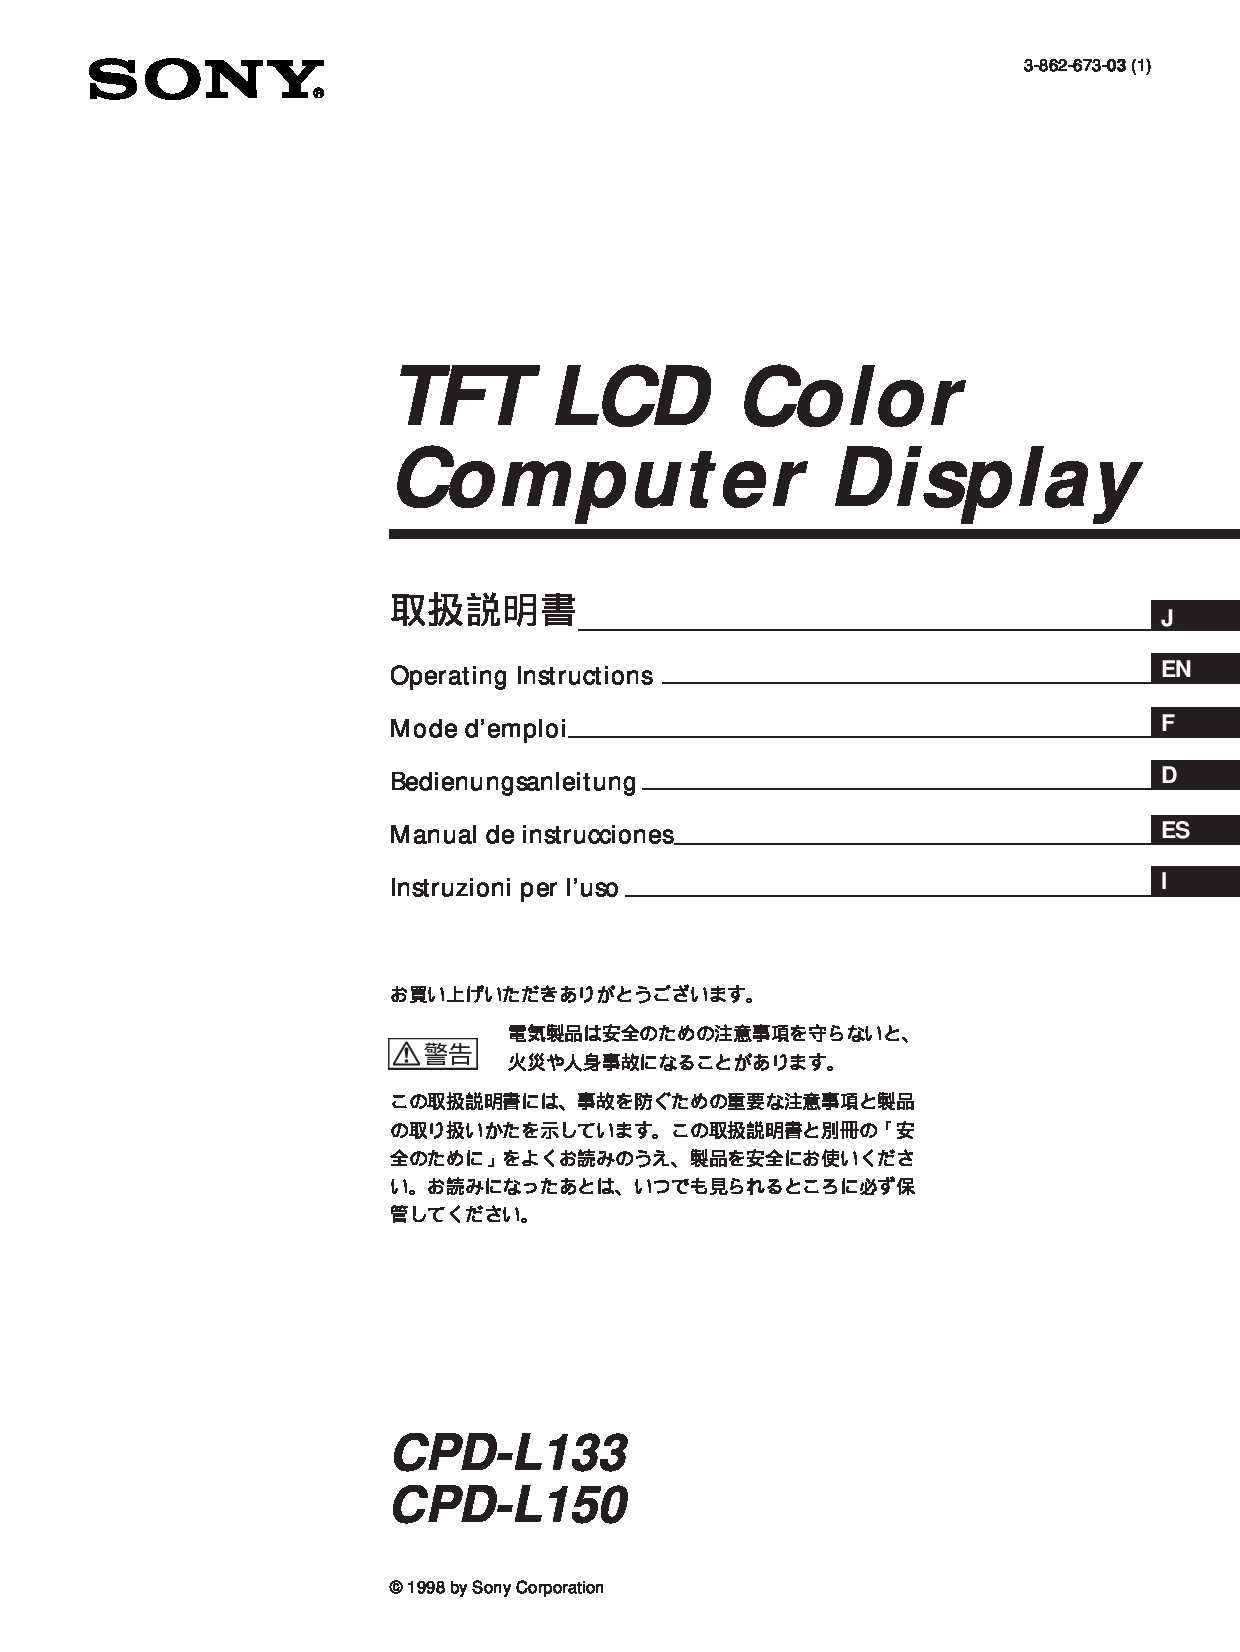 Sony CPD-L133 Manual